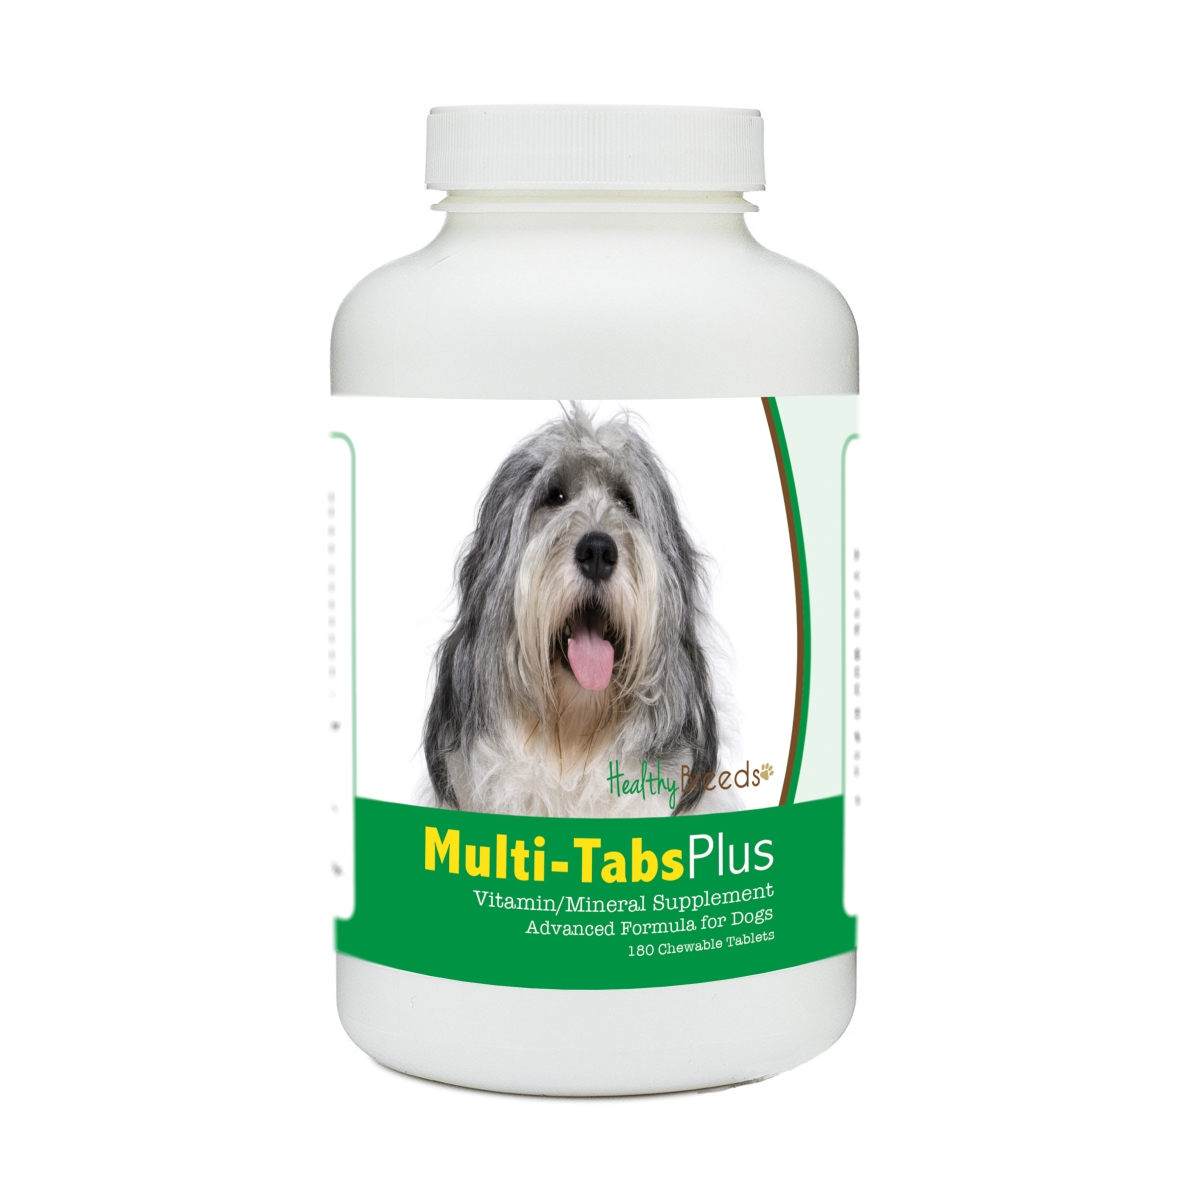 Healthy Breeds 840235179368 Polish Lowland Sheepdog Multi-Tabs Plus Chewable Tablets - 180 Count